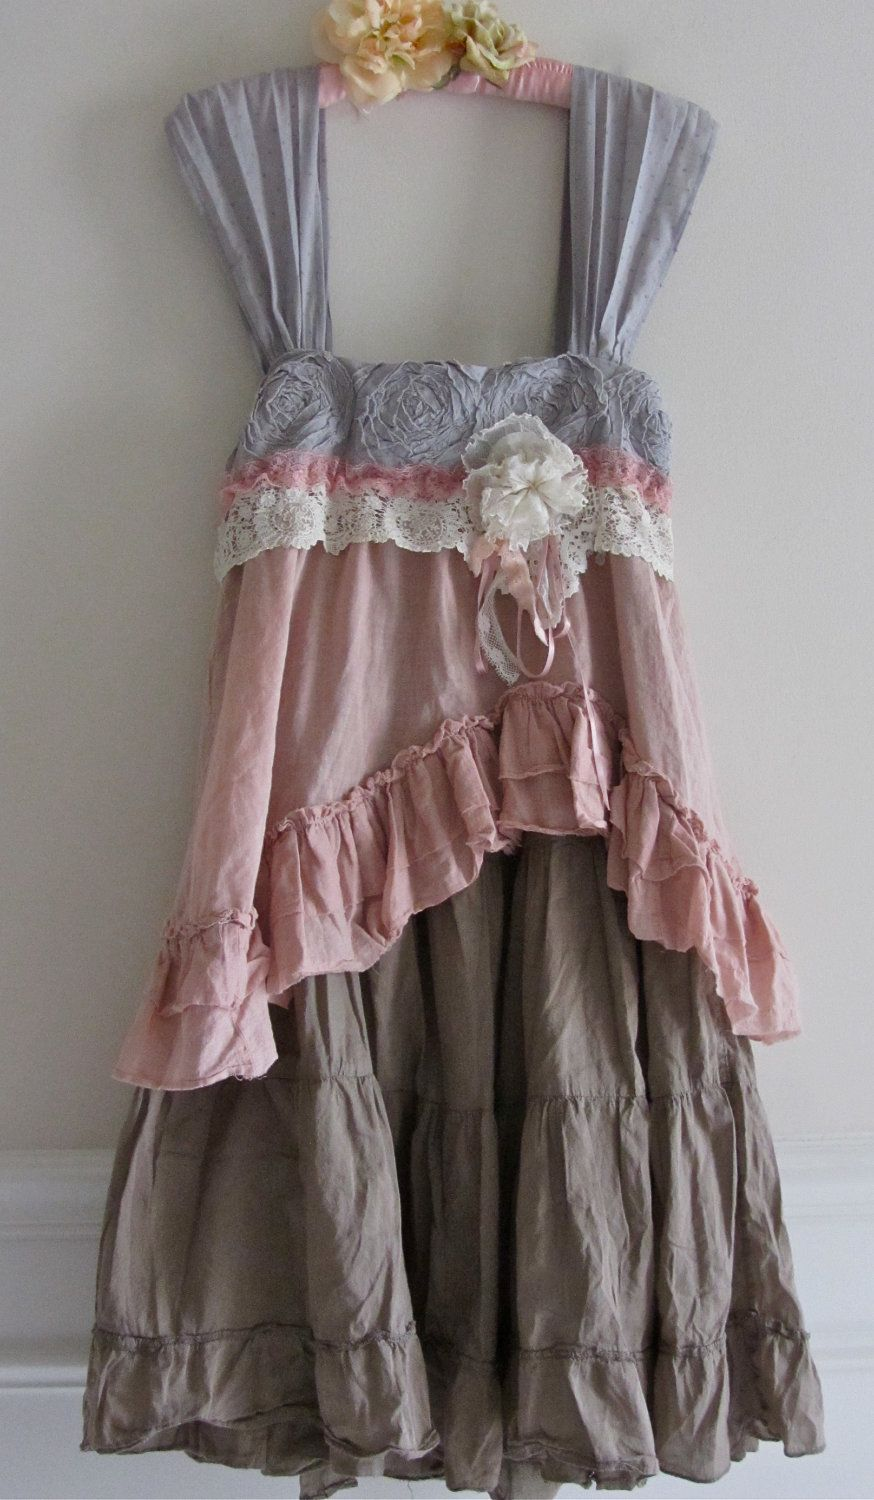 French Sugar Dress Shabby Sweet And Chic Ruffled Ruffle By Izzyroo Looks Like An Old Skirt Made Into A